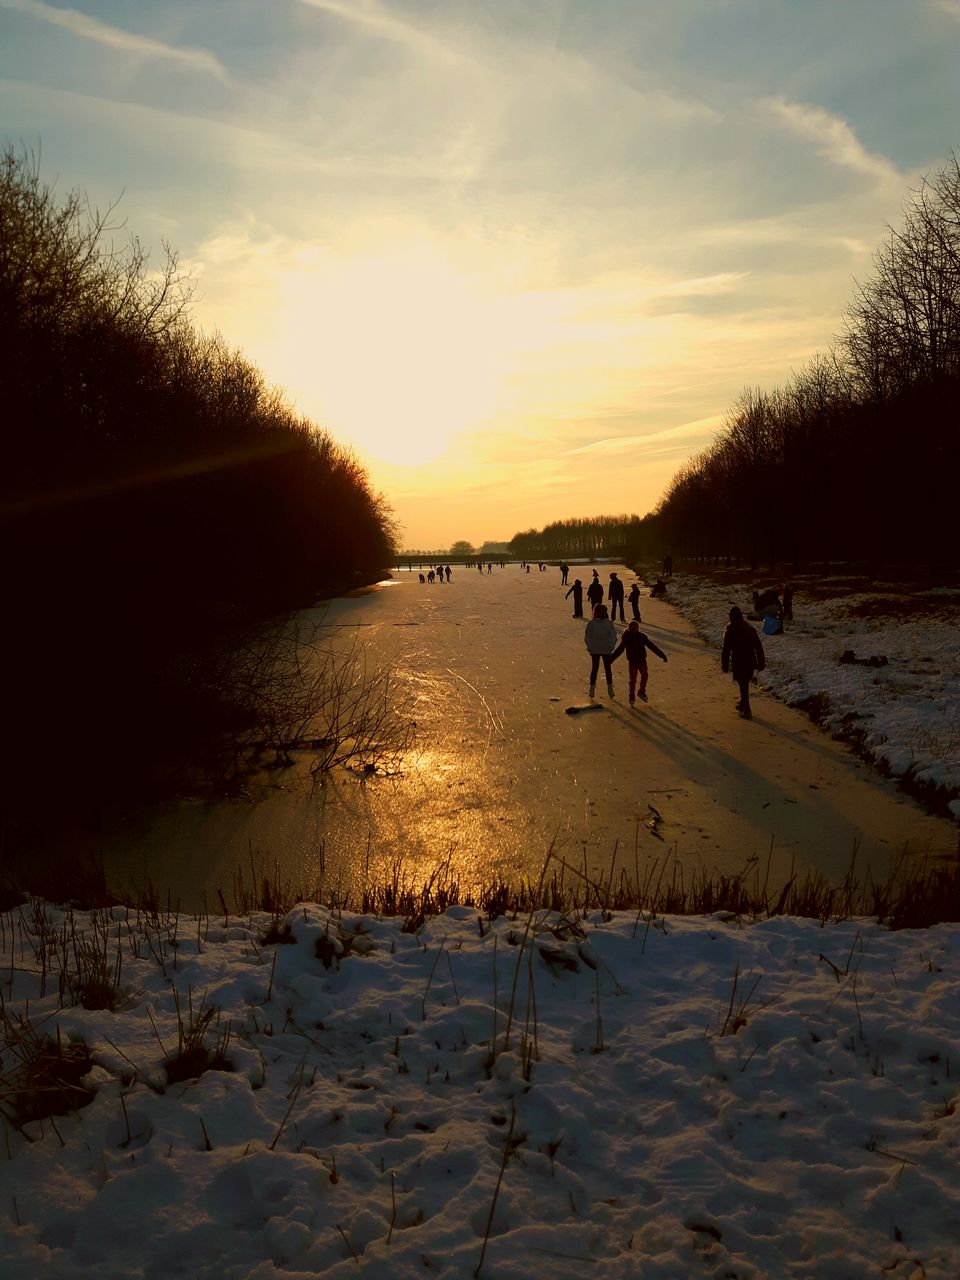 sunset, nature, winter, domestic animals, sky, beauty in nature, cold temperature, mammal, snow, scenics, silhouette, sun, sunlight, outdoors, tree, real people, dog, togetherness, men, water, day, people